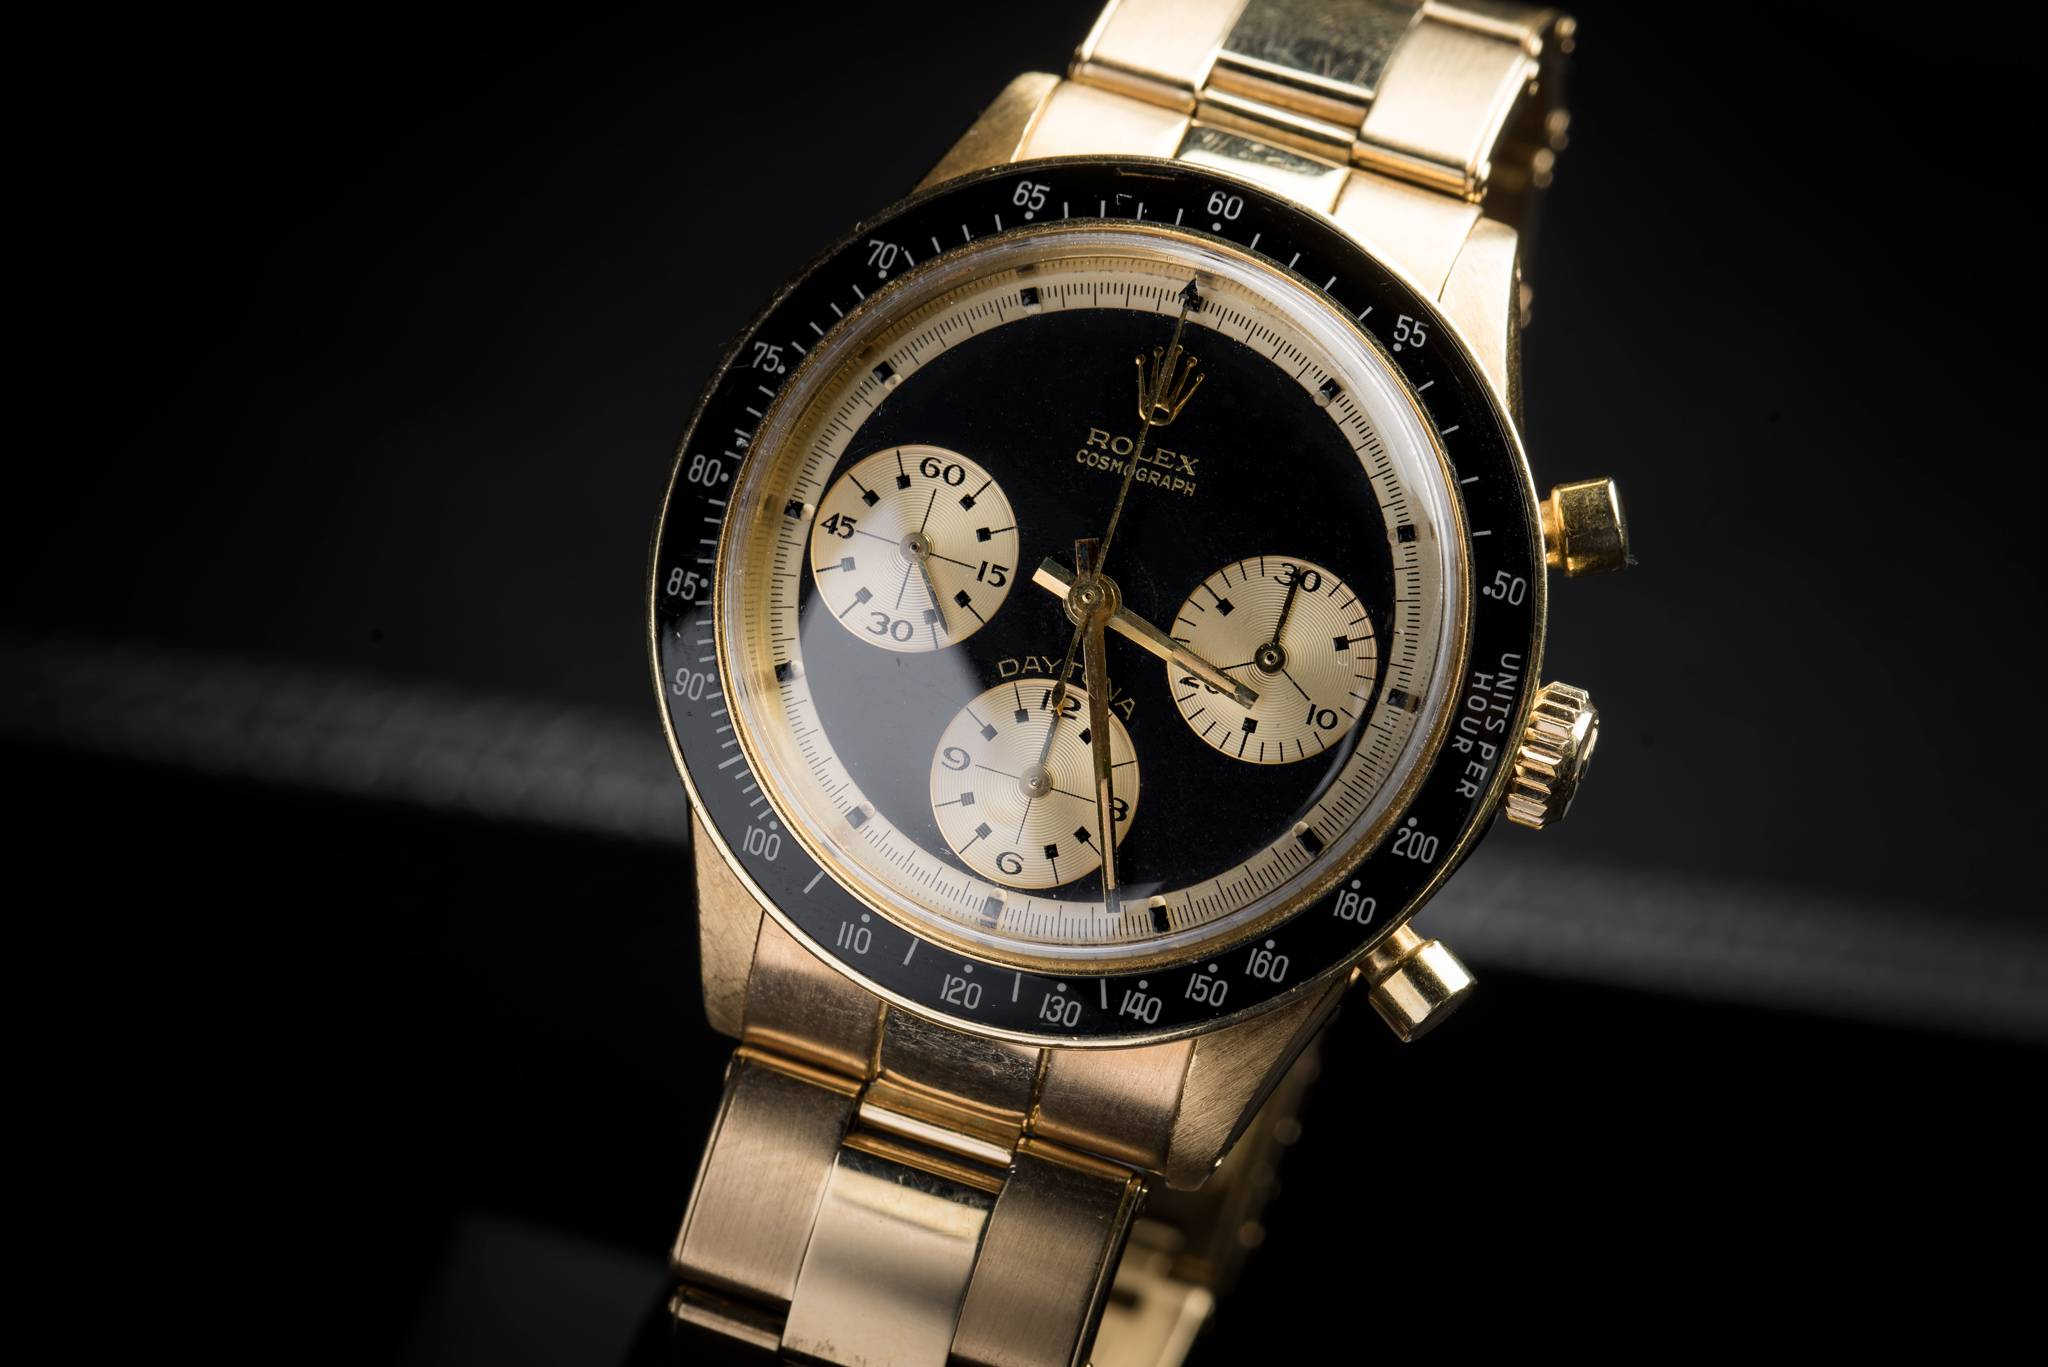 Rolex 'The Hermès Paul Newman', Reference 6241, Yellow Gold, 1968 Close Up